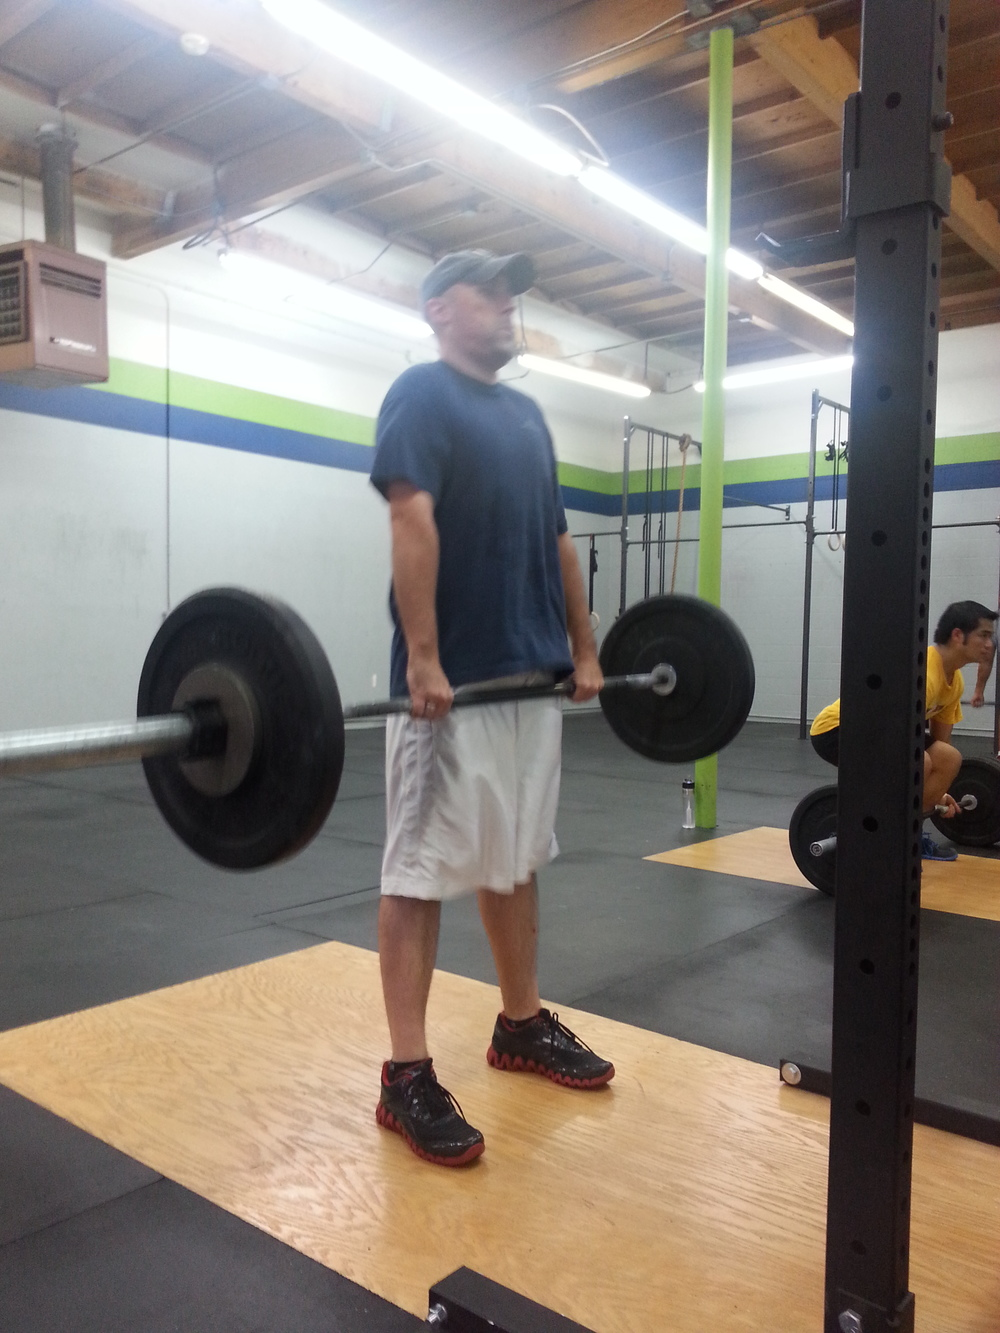 Keith L. Deadlifting!